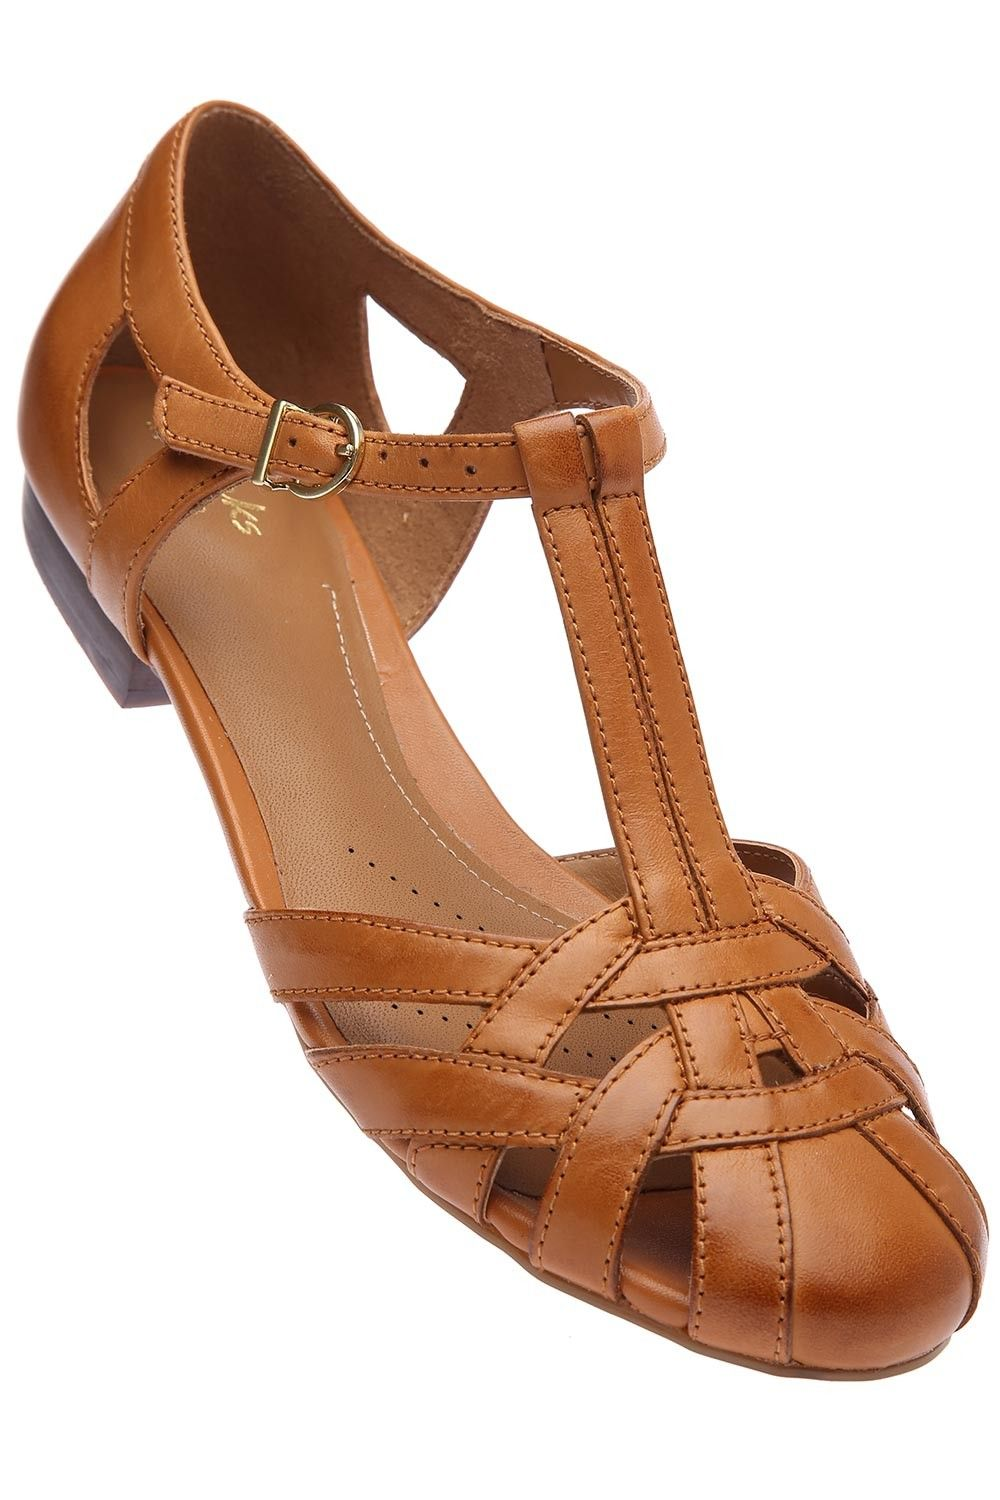 Sandals for Women On Sale in Outlet, Dark Cognac, Leather, 2017, 7.5 Chie Mihara